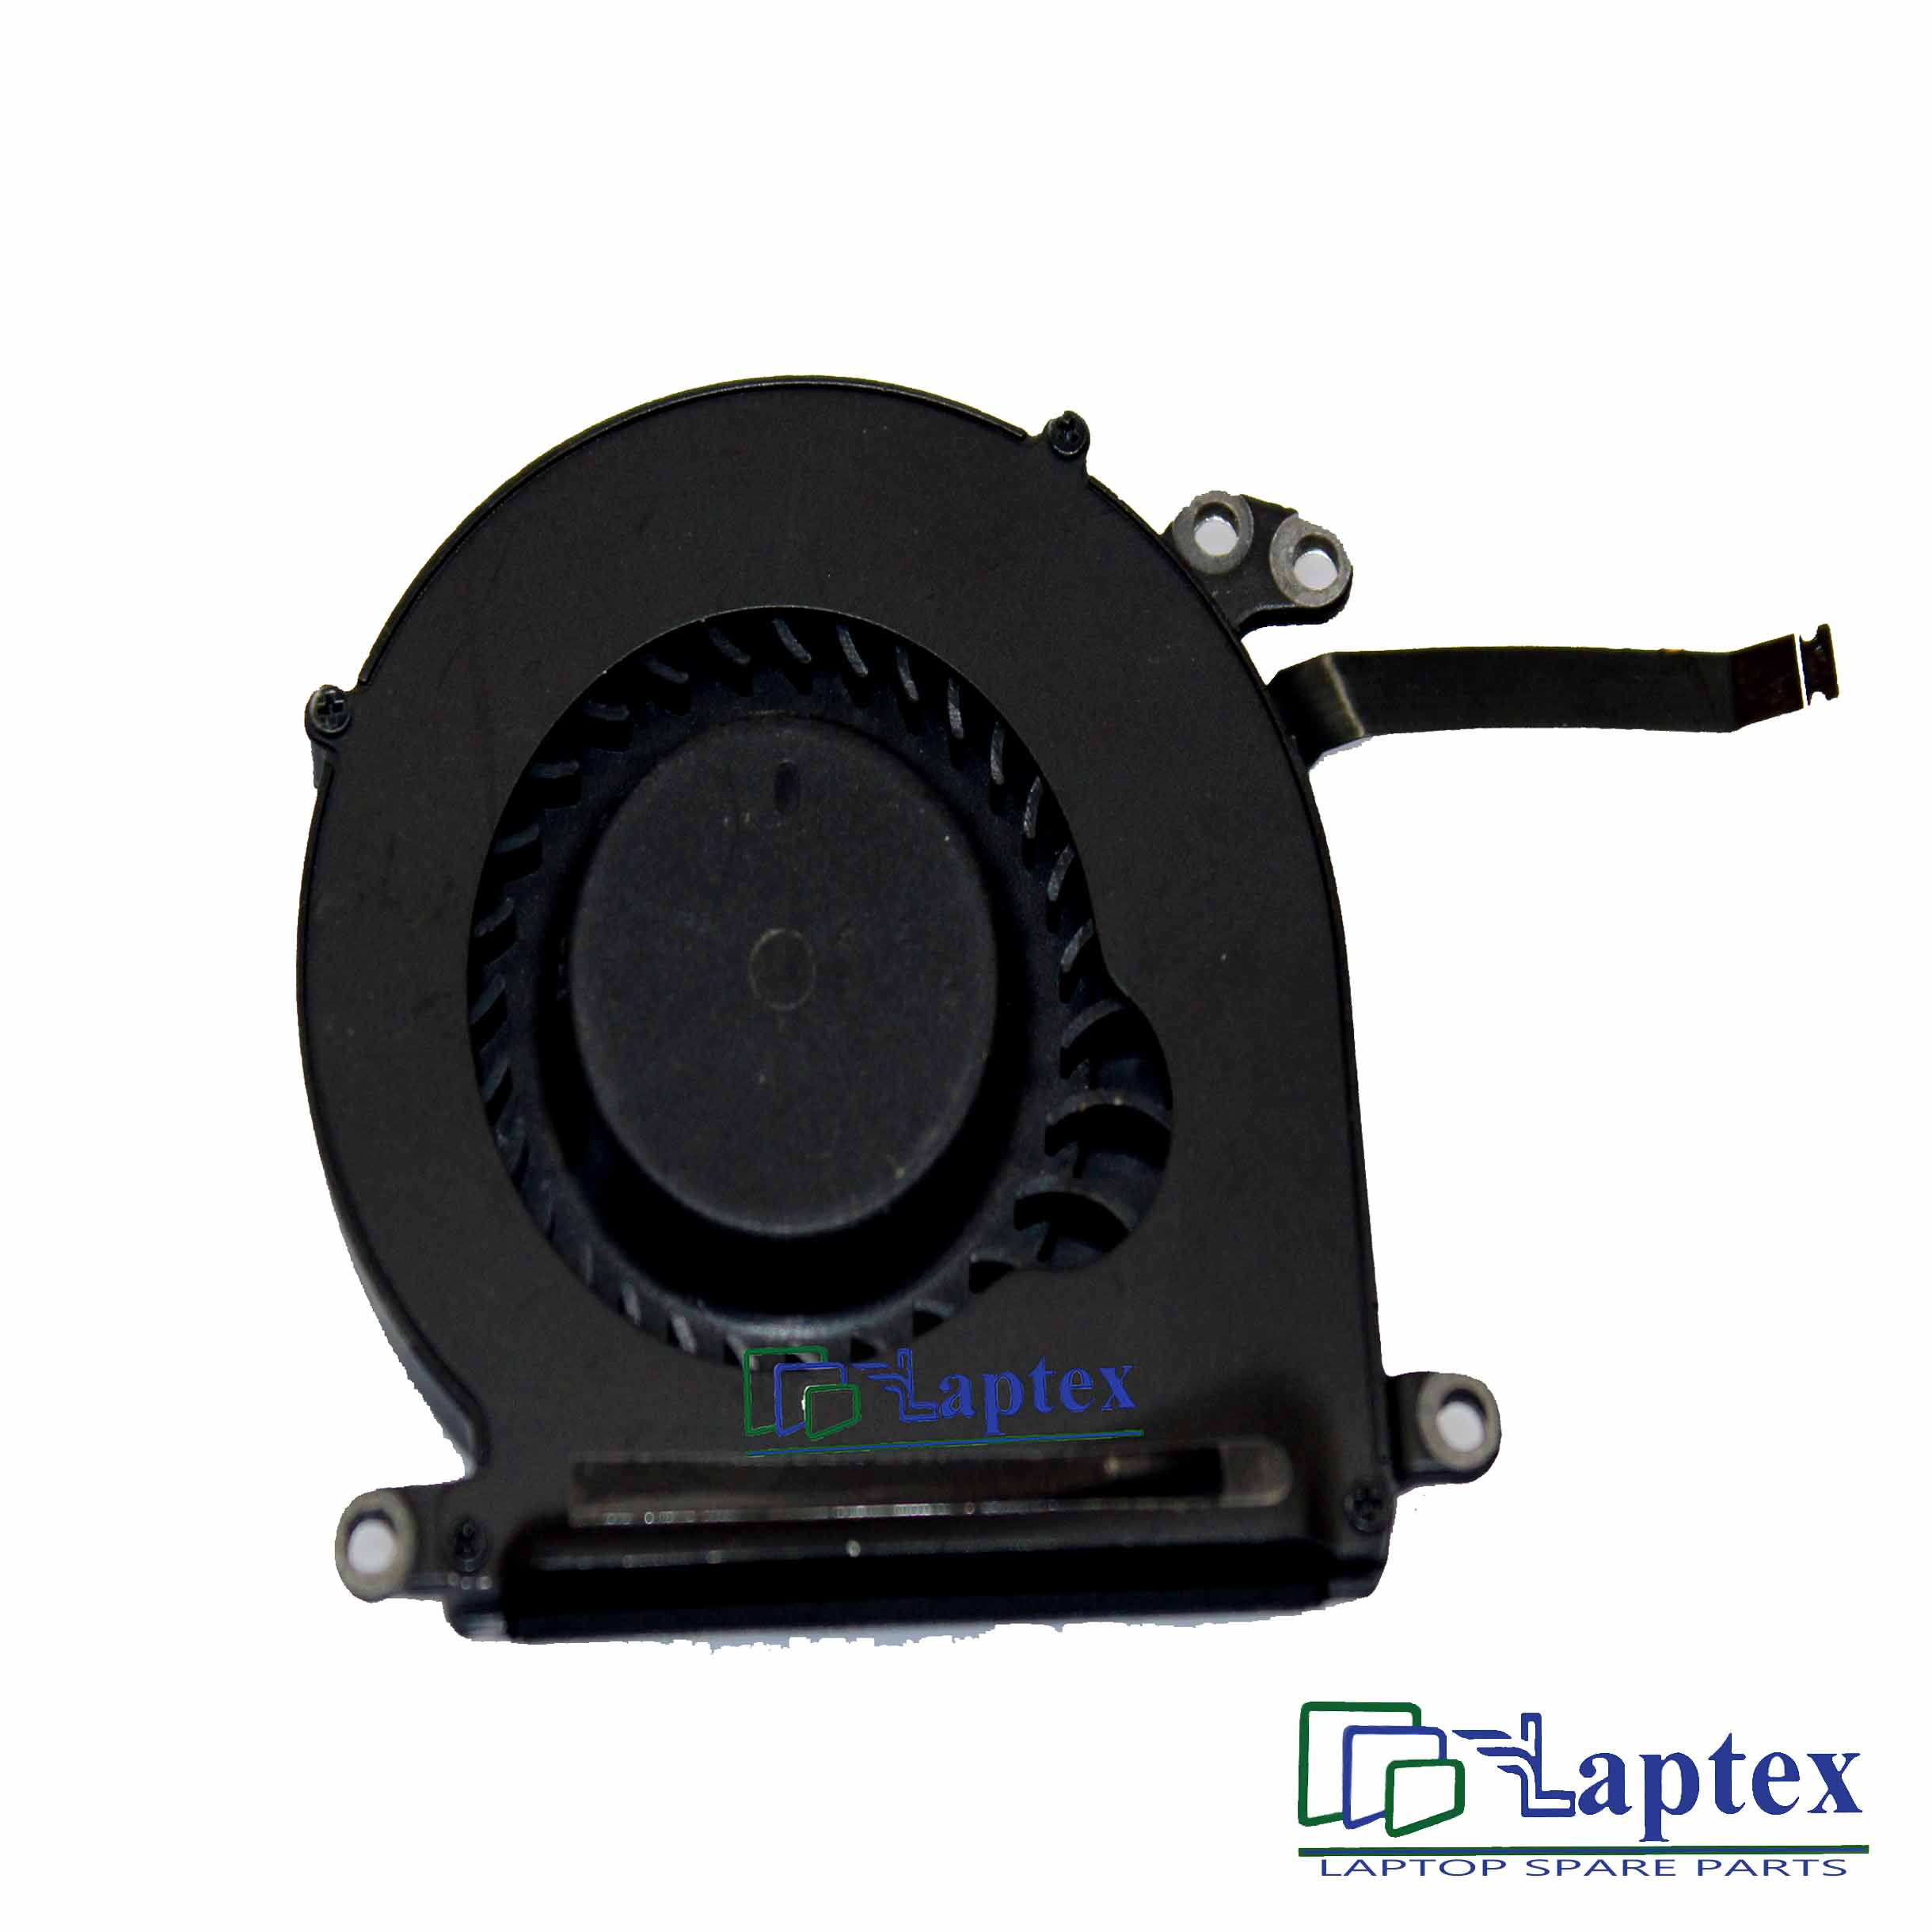 Air A1370 Cooling Fan